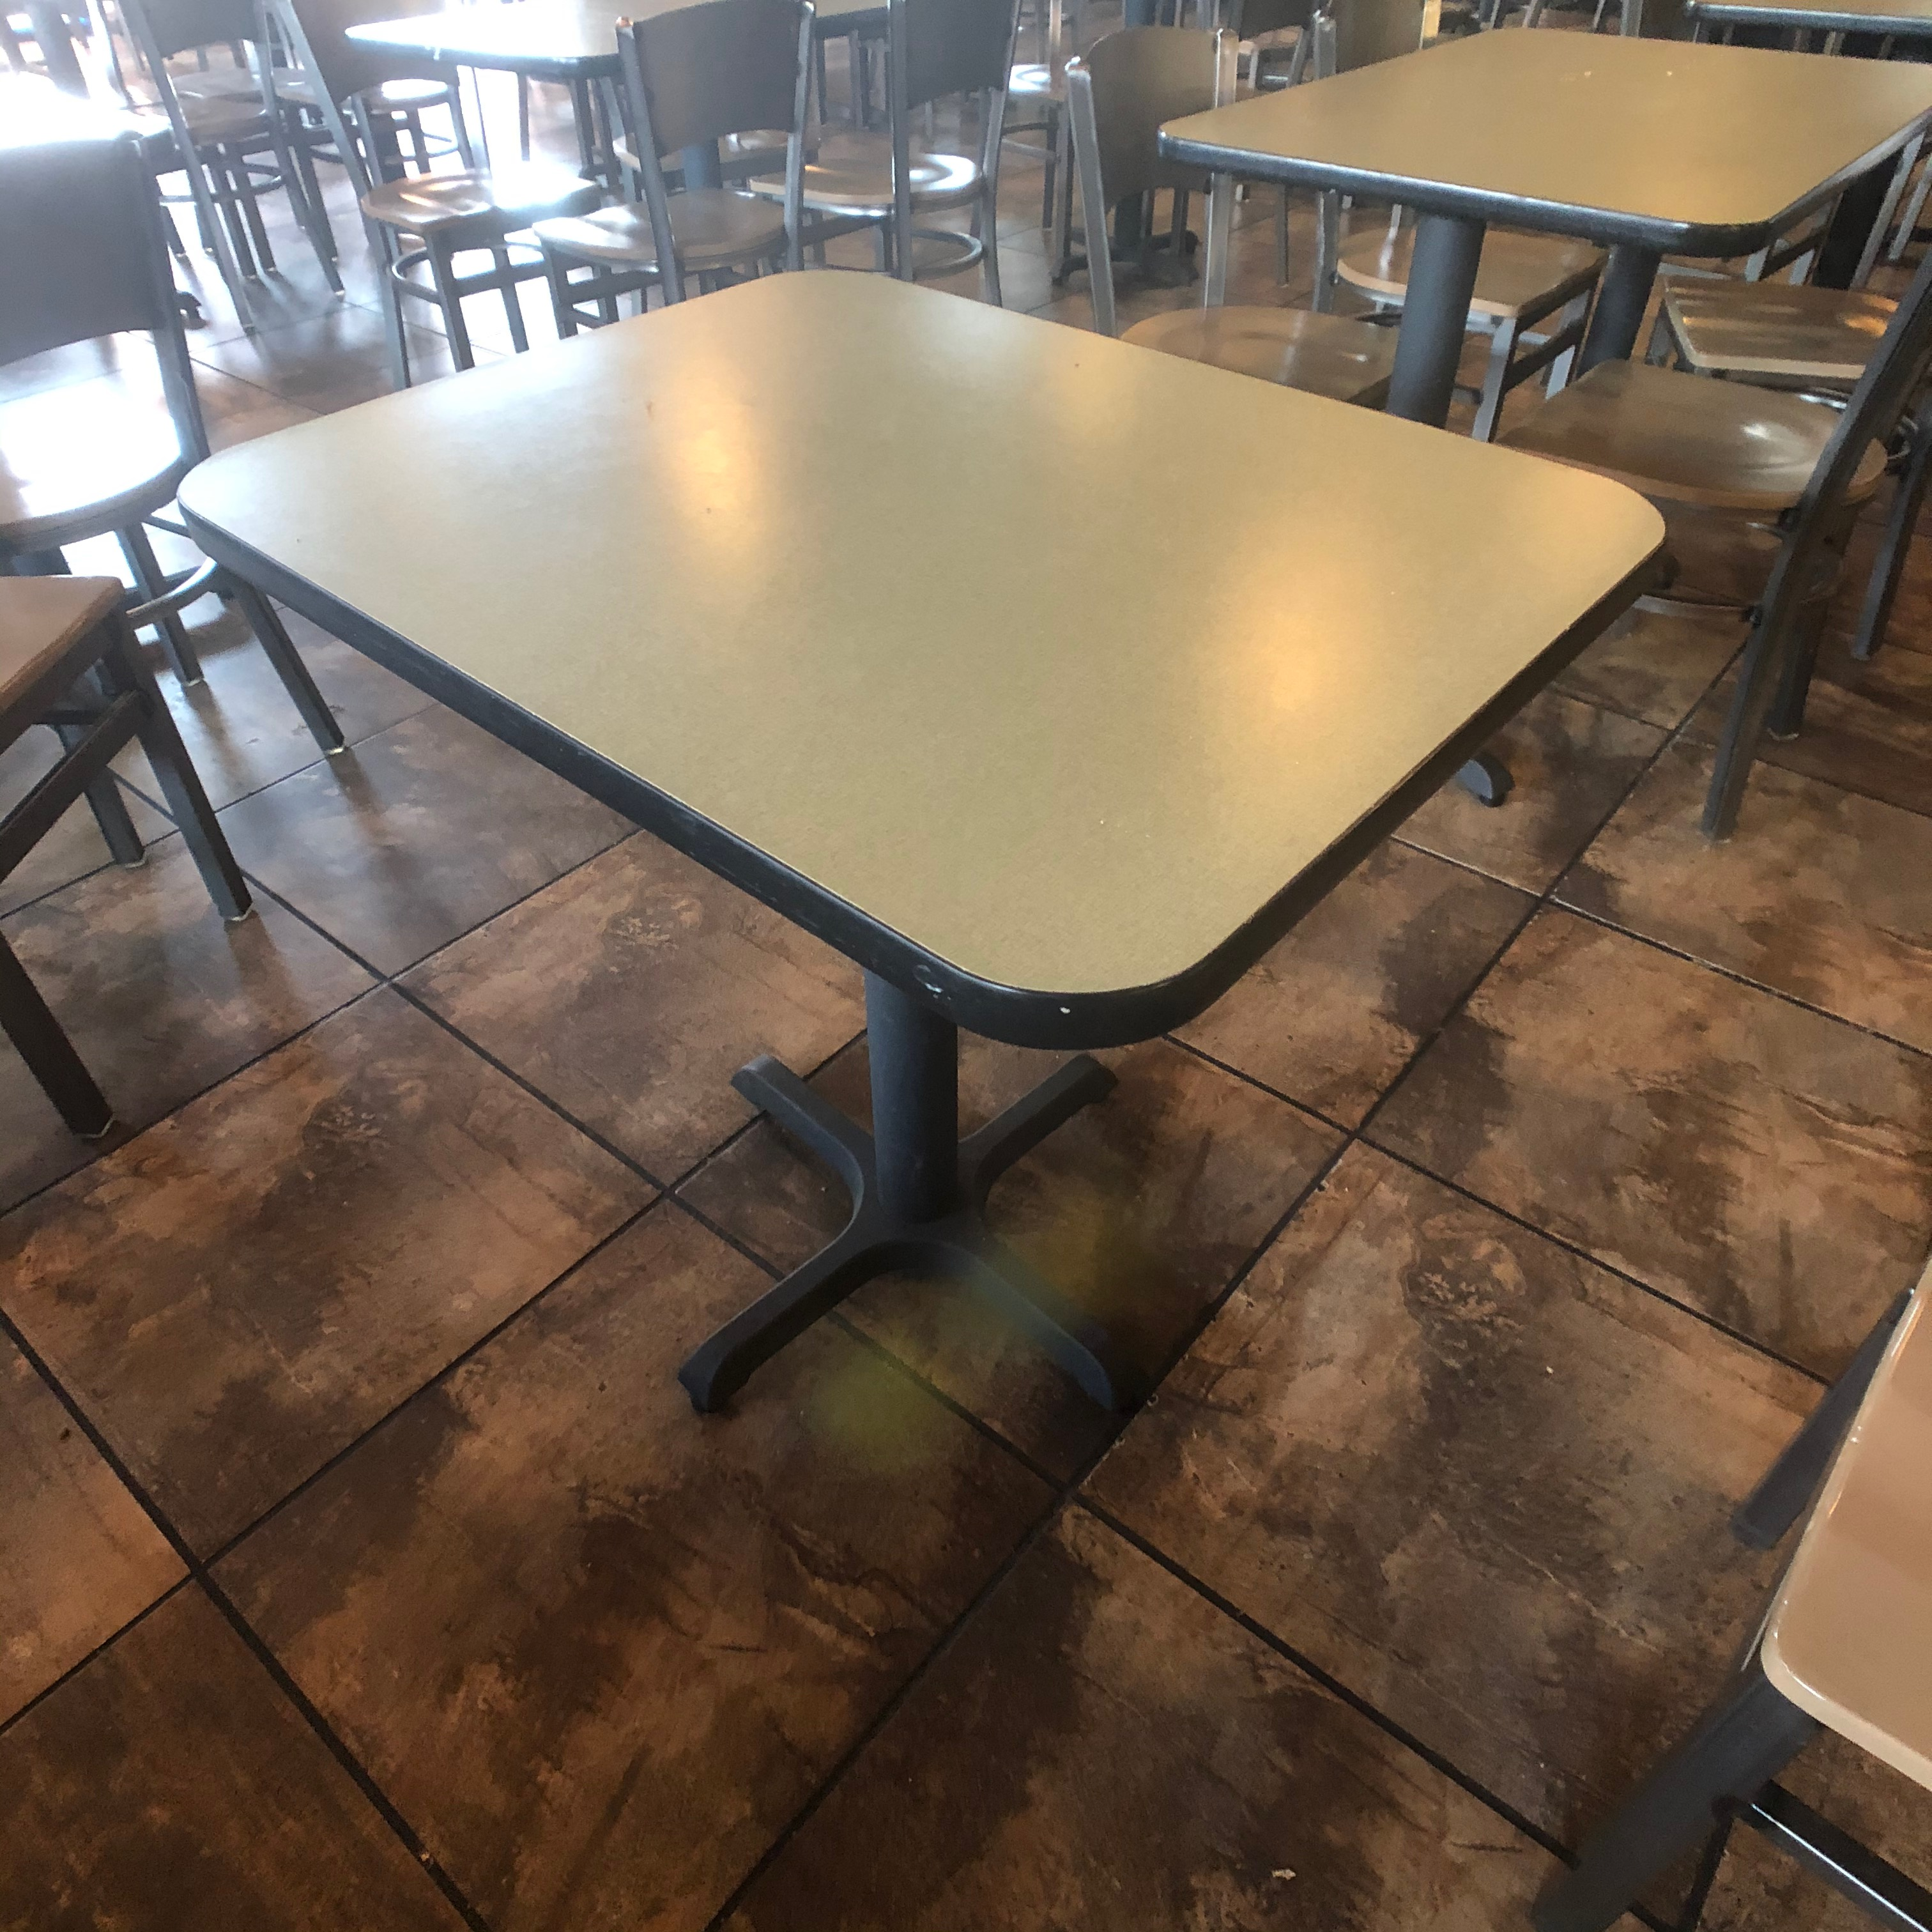 "(10) 2-Person Tables with (20) Walsh Simmons Seating Chairs, Approx. 2'6"" L x 24"" W"